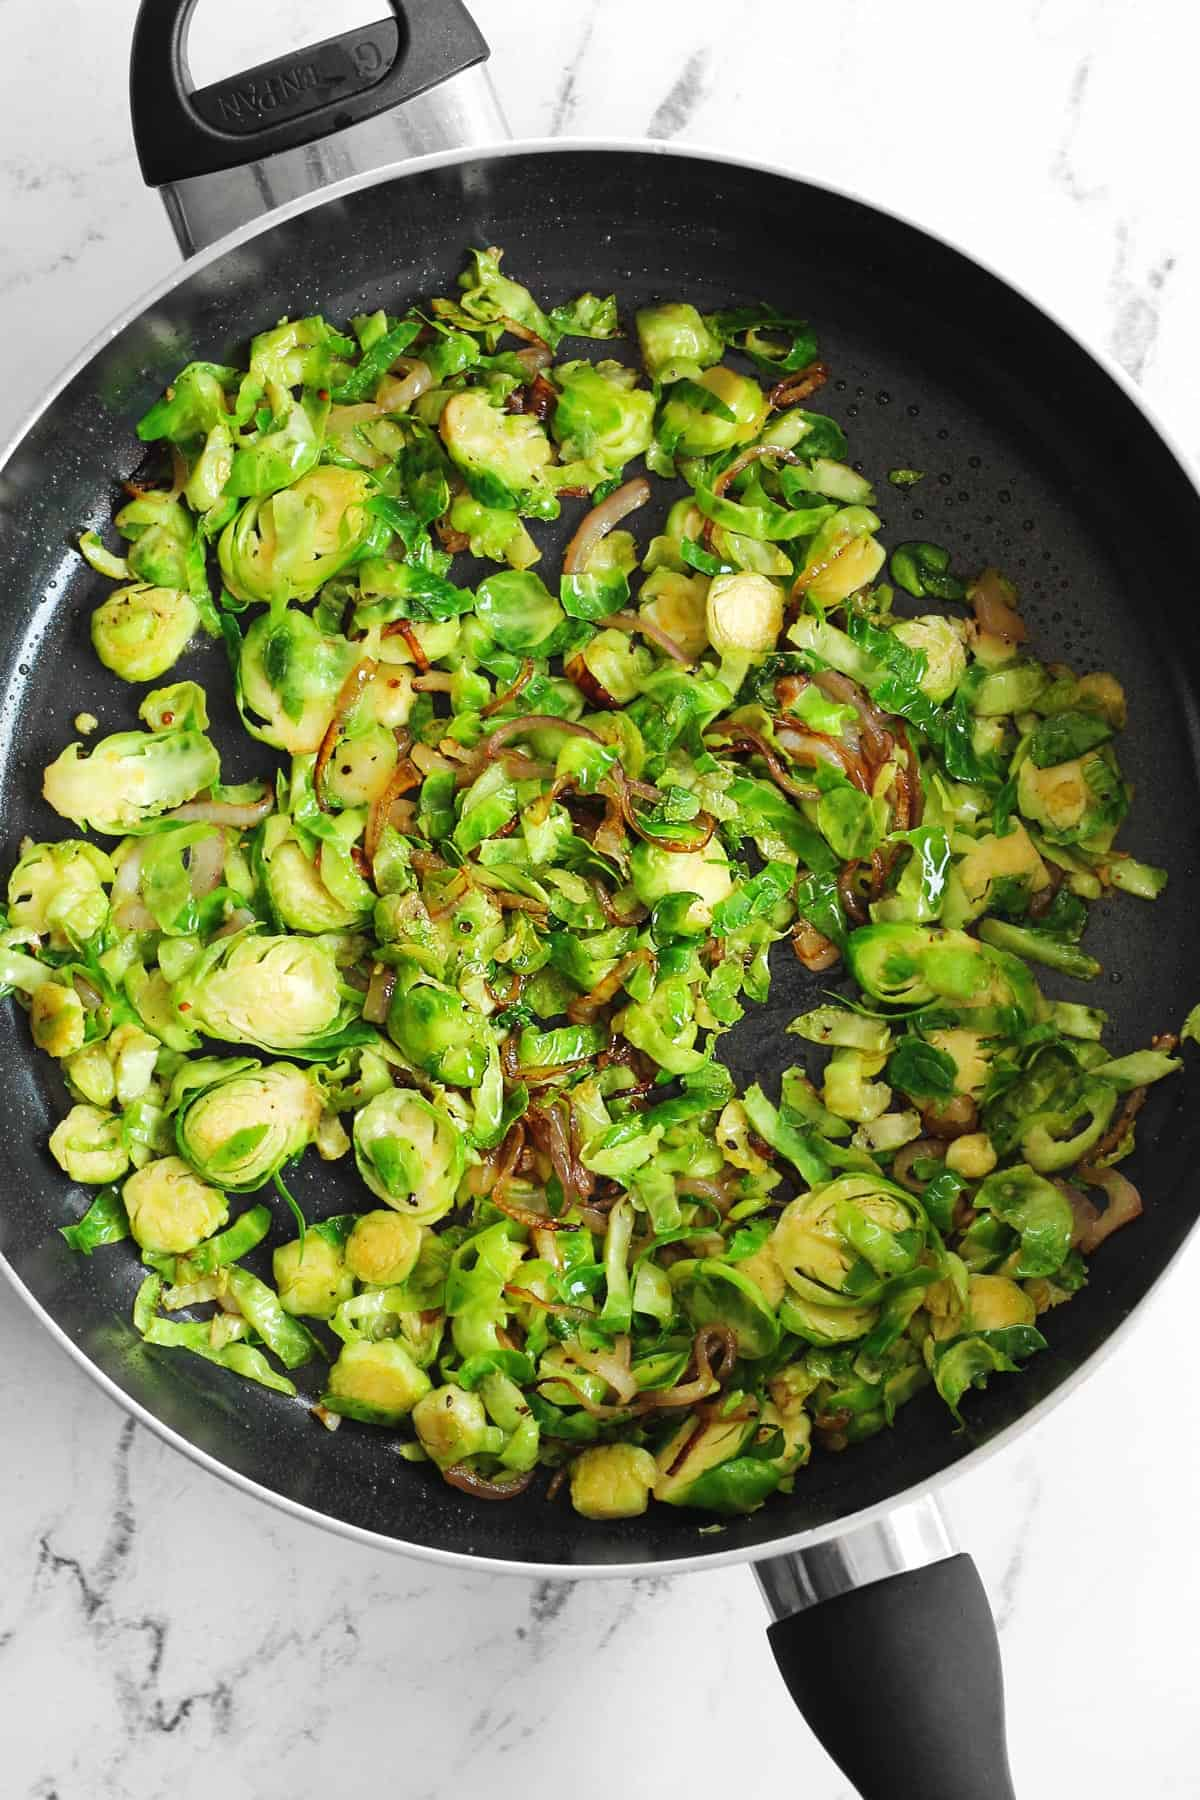 Warm brussels sprouts in a skillet